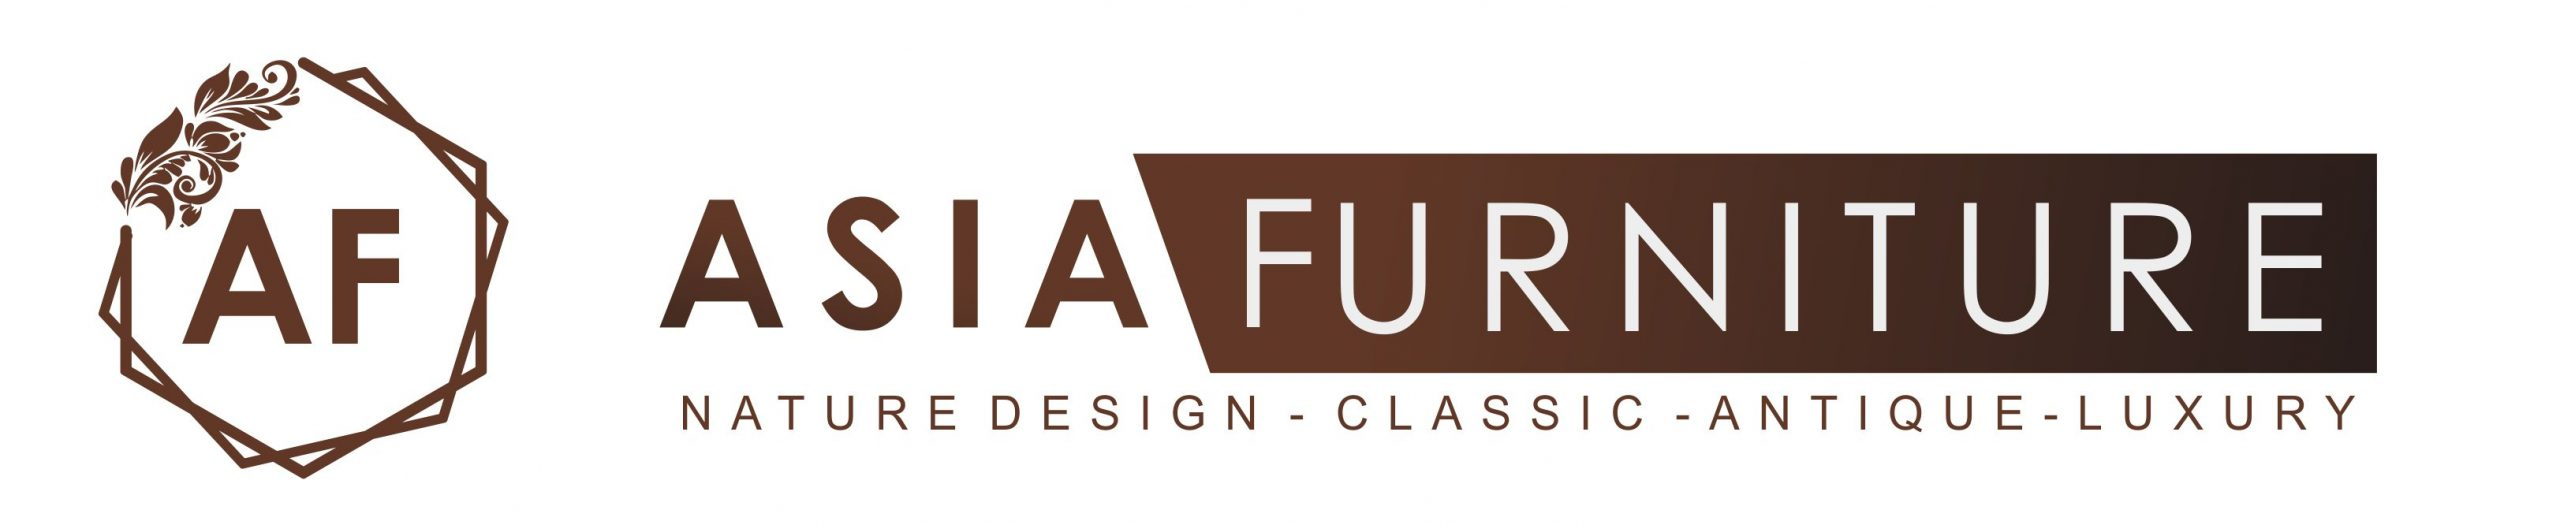 LOGO ASIA FURNITURE ID